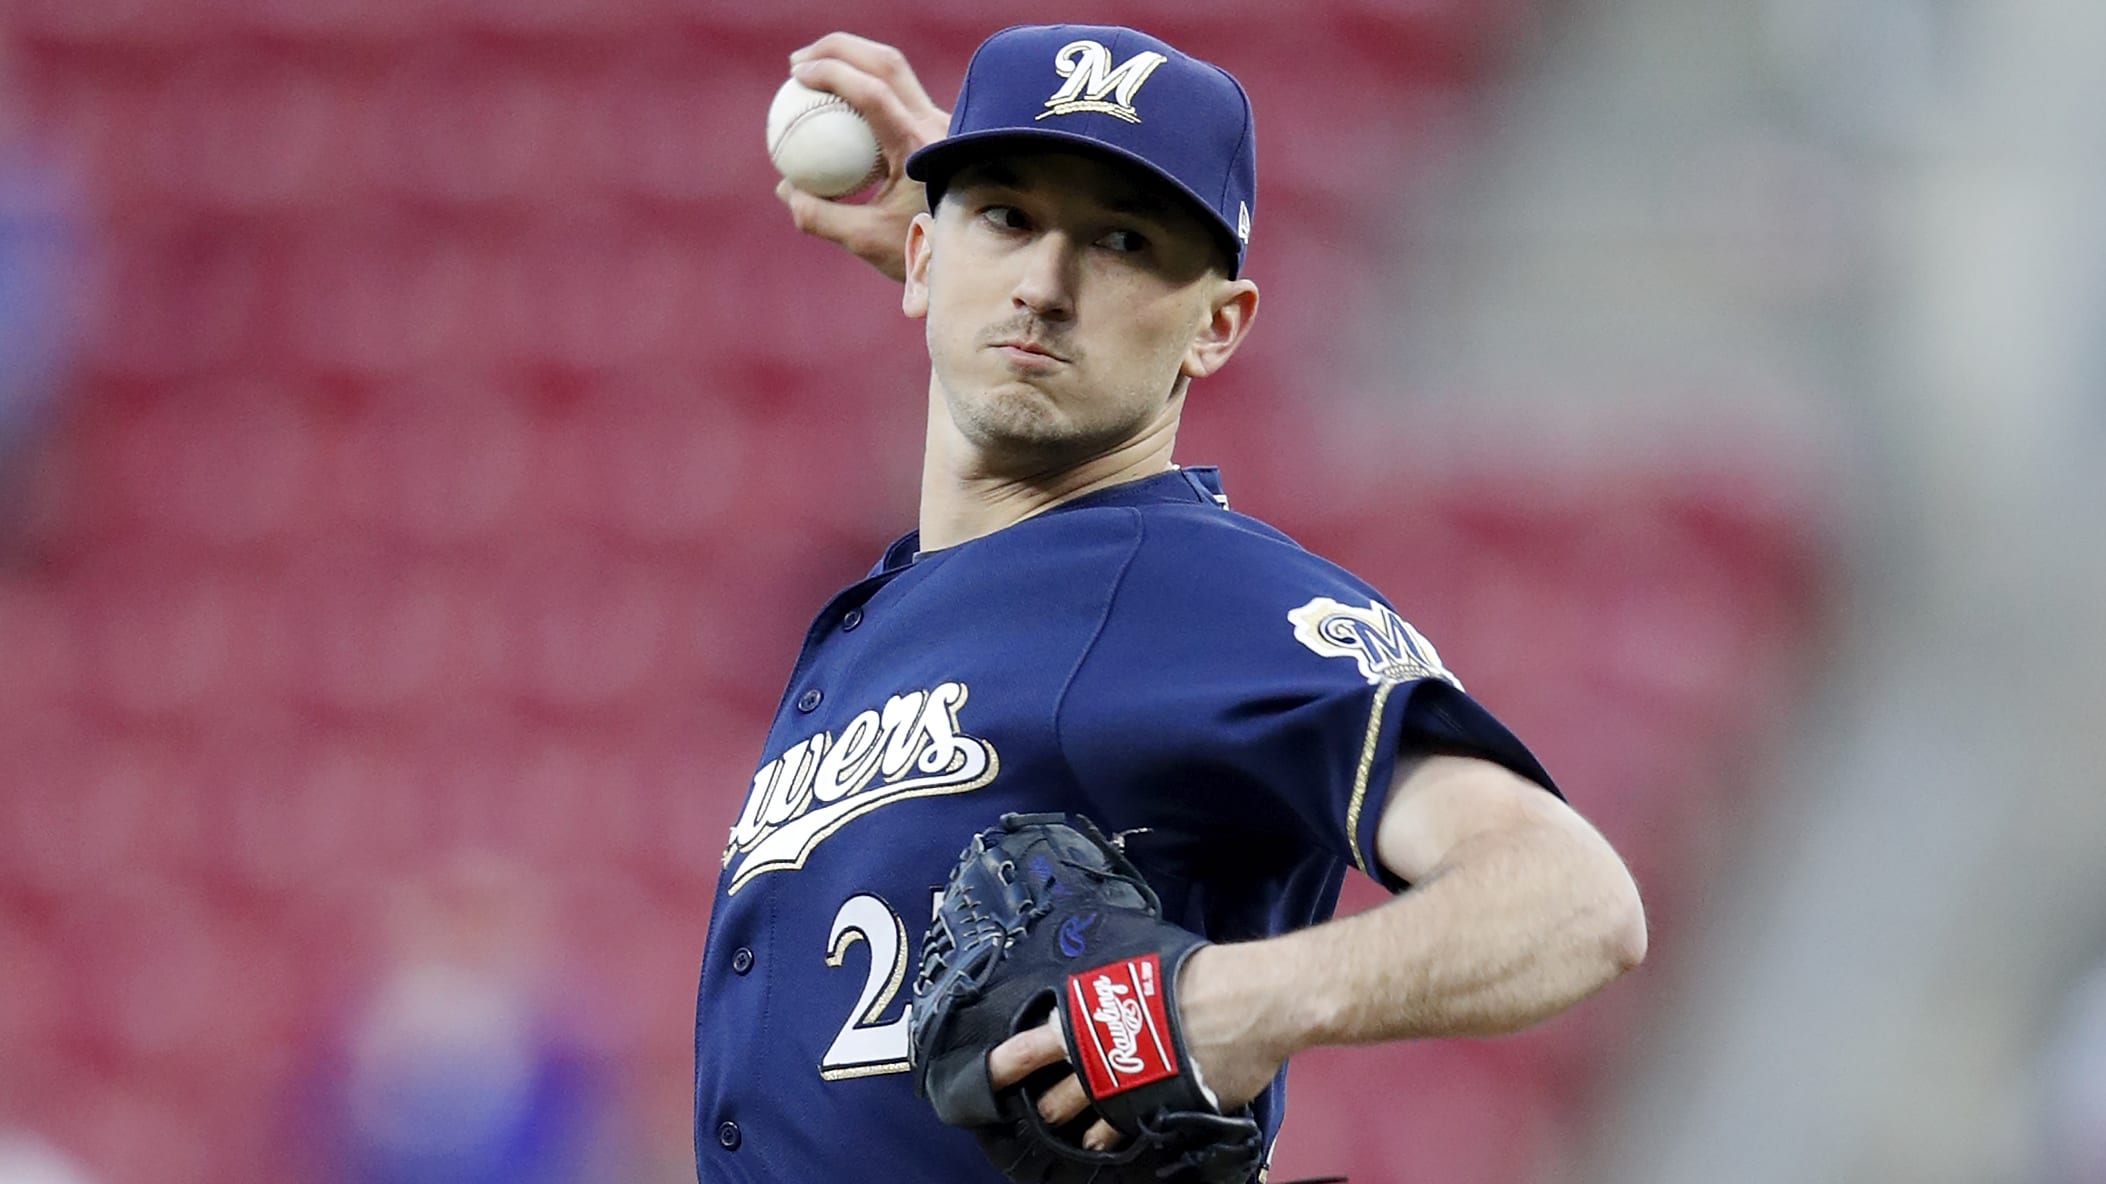 CINCINNATI, OH - APRIL 01: Zach Davies #27 of the Milwaukee Brewers pitches against the Cincinnati Reds in the second inning at Great American Ball Park on April 1, 2019 in Cincinnati, Ohio. (Photo by Joe Robbins/Getty Images)